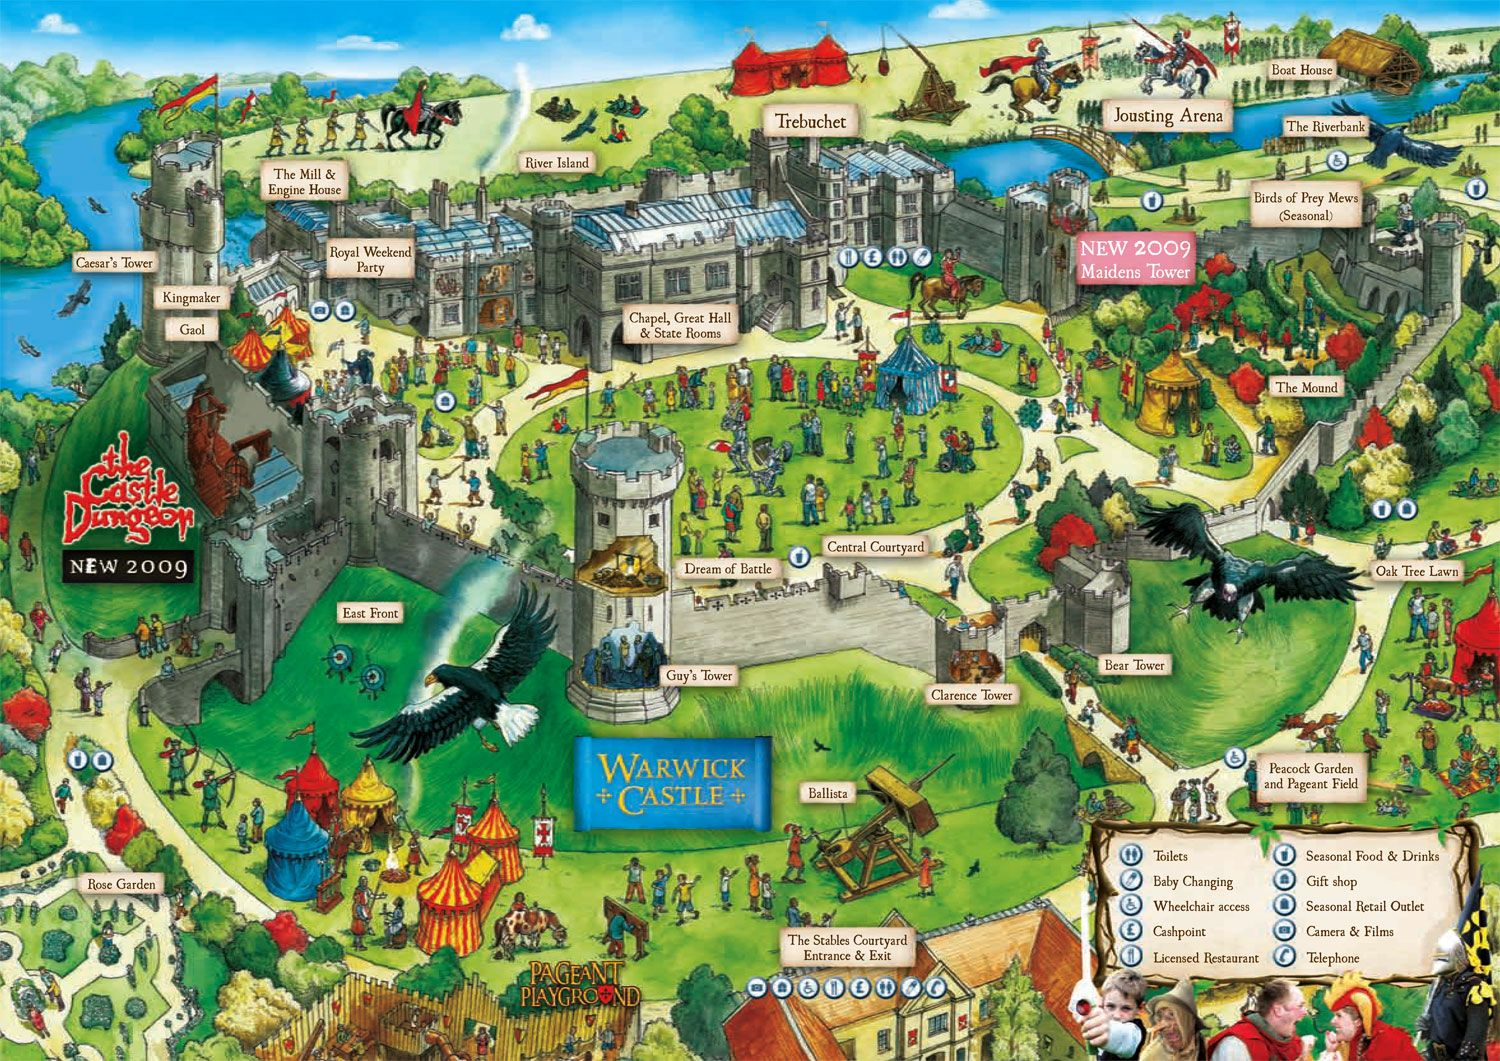 Warwick Castle Map Warwick Castle Map | Castles | Warwick castle, Castle, Castles in